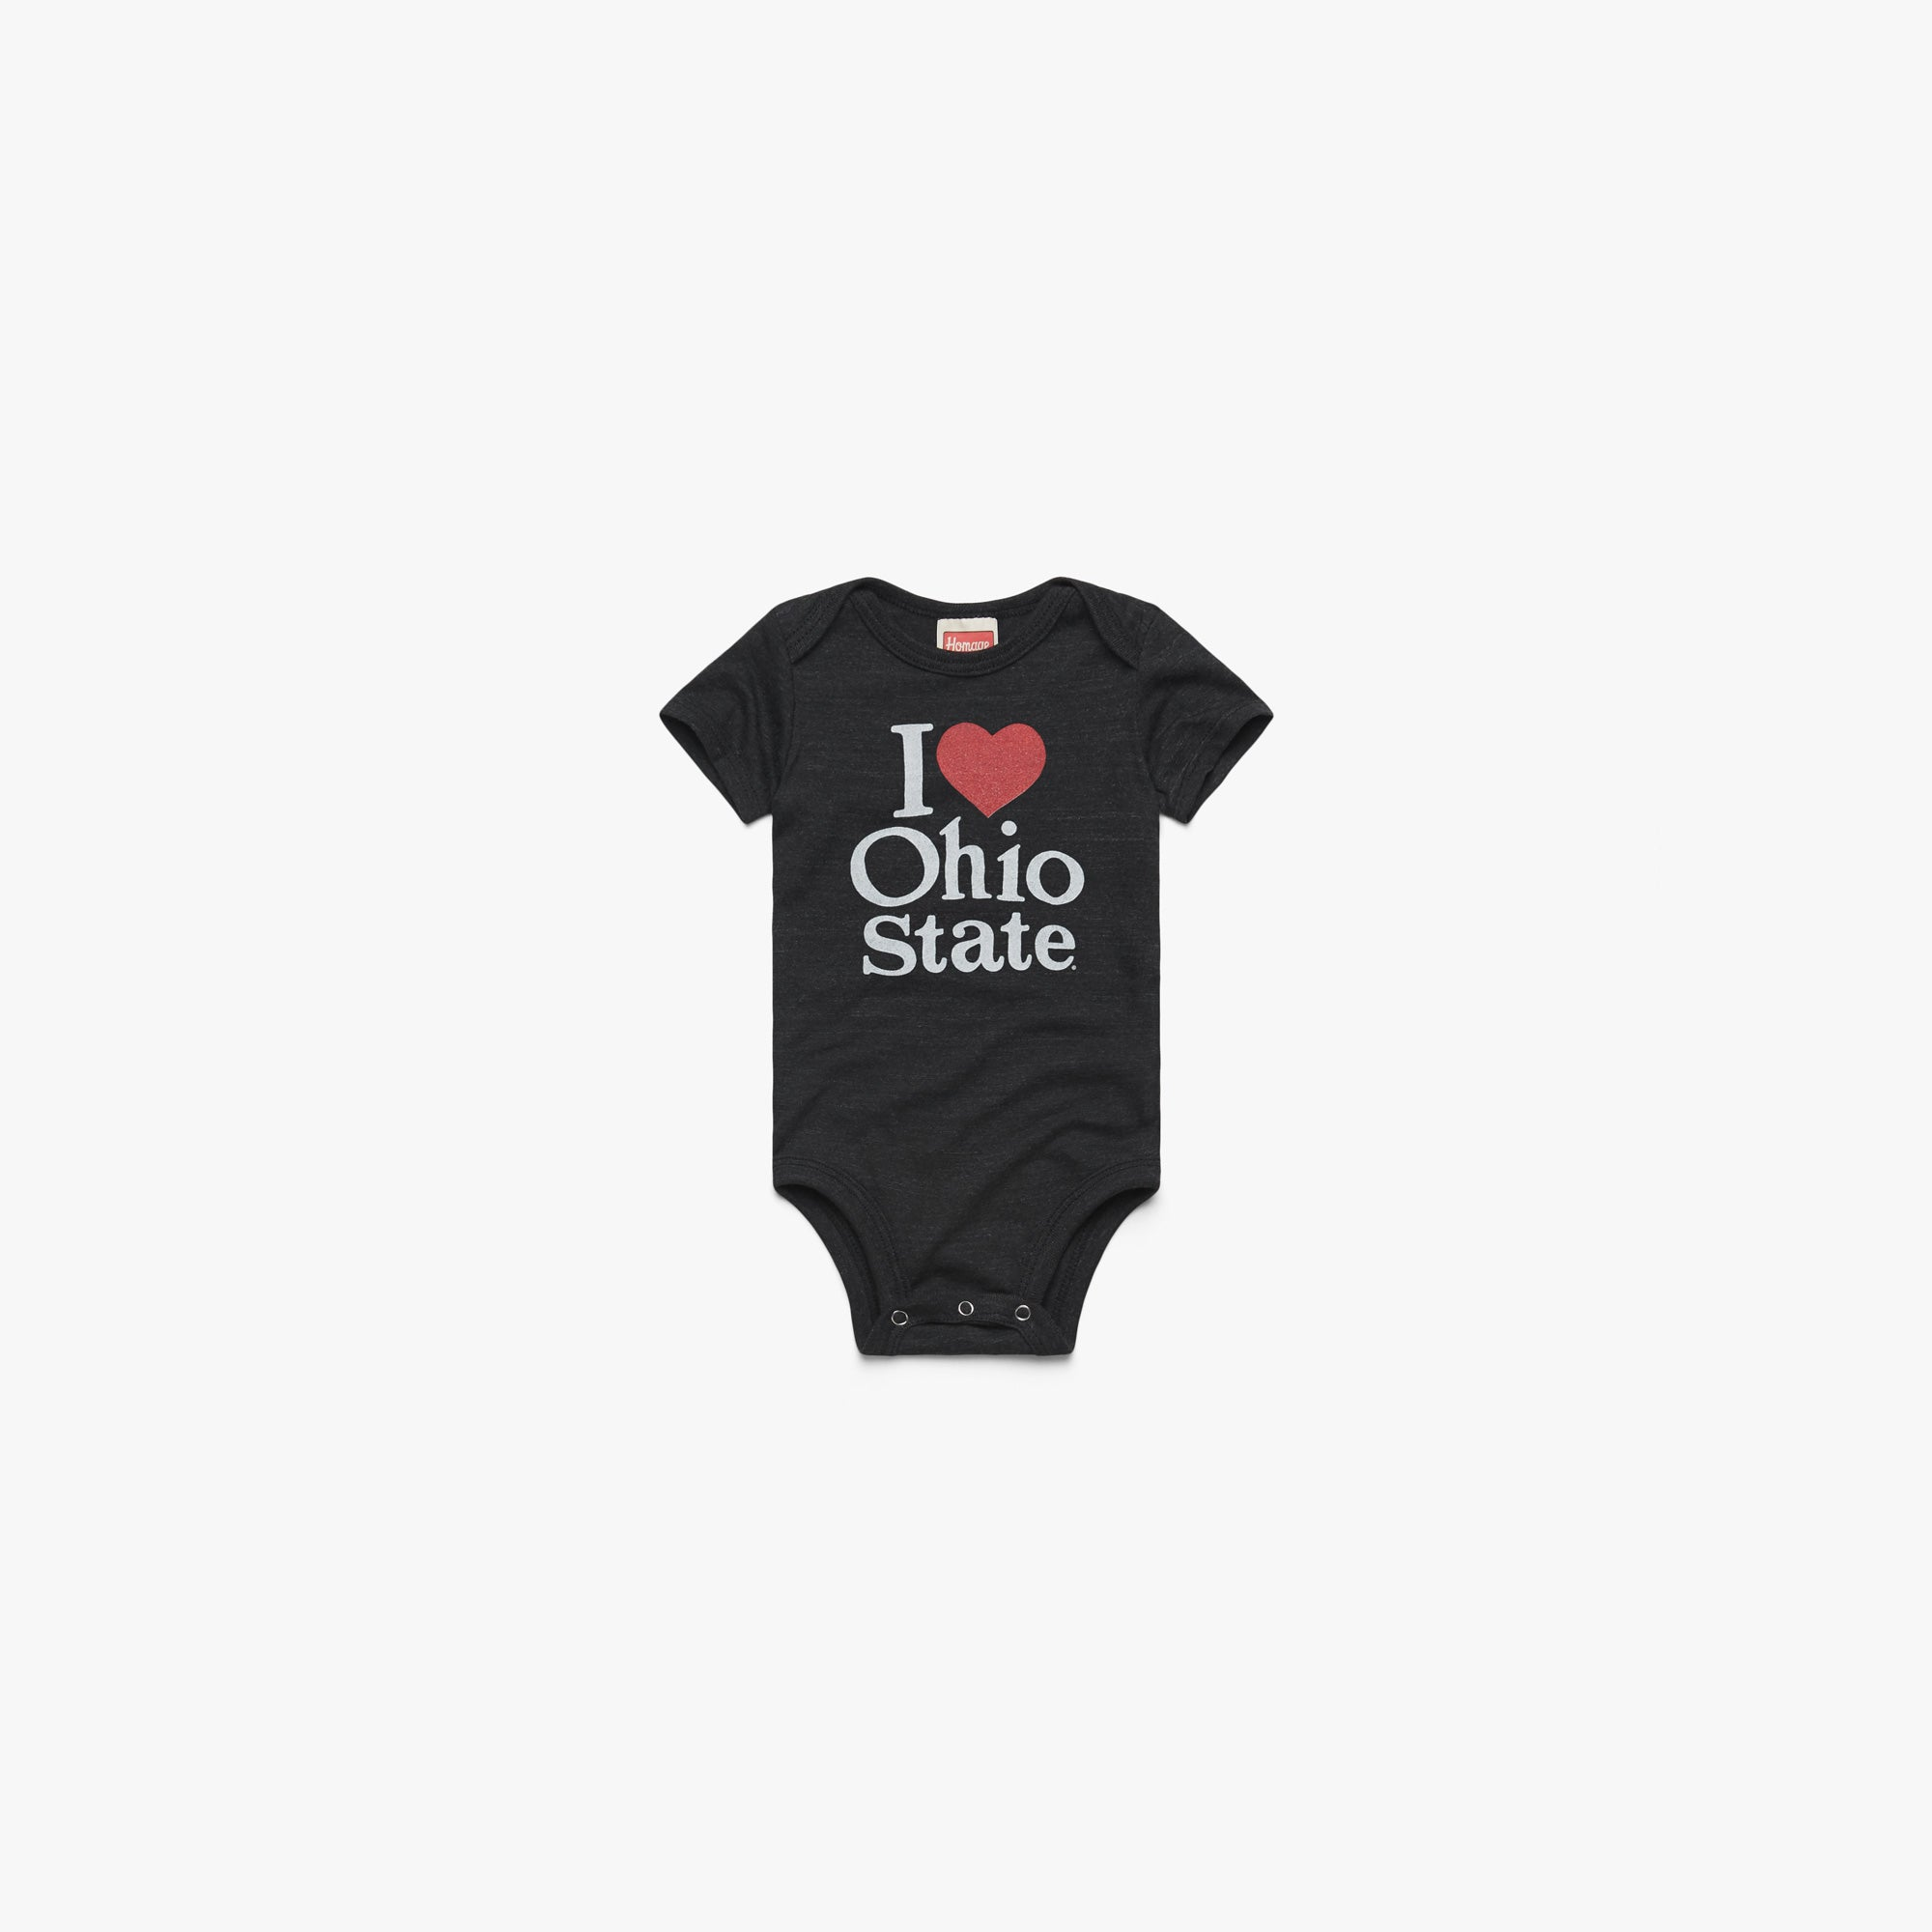 I Heart Ohio State Baby One Piece